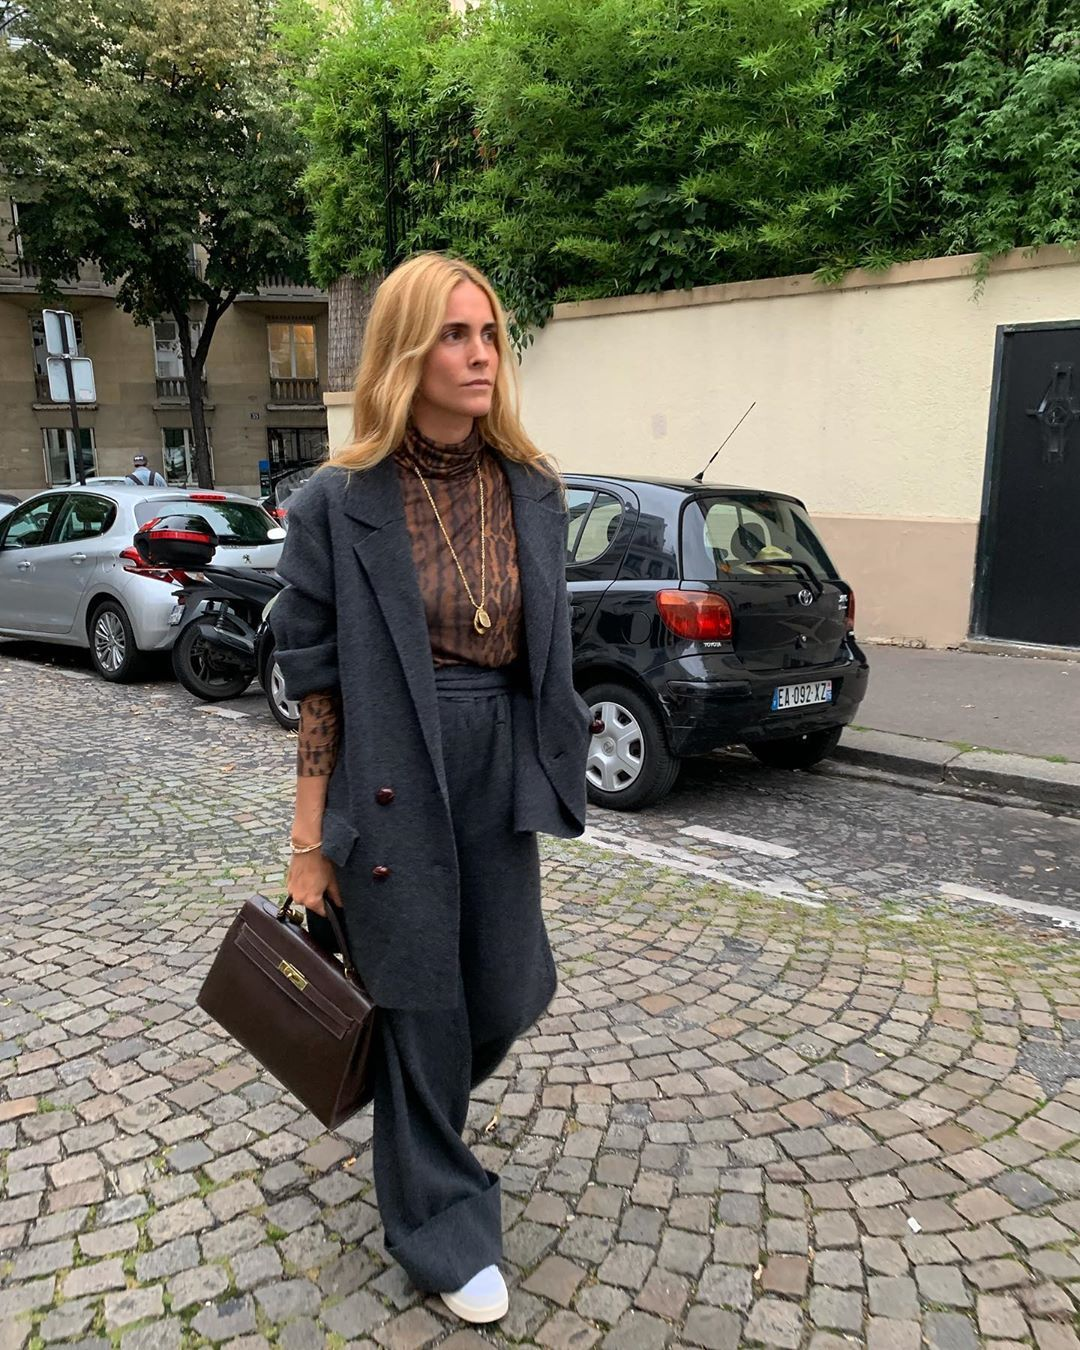 blanca-miro-gray-overszied-suit-fall-instagram